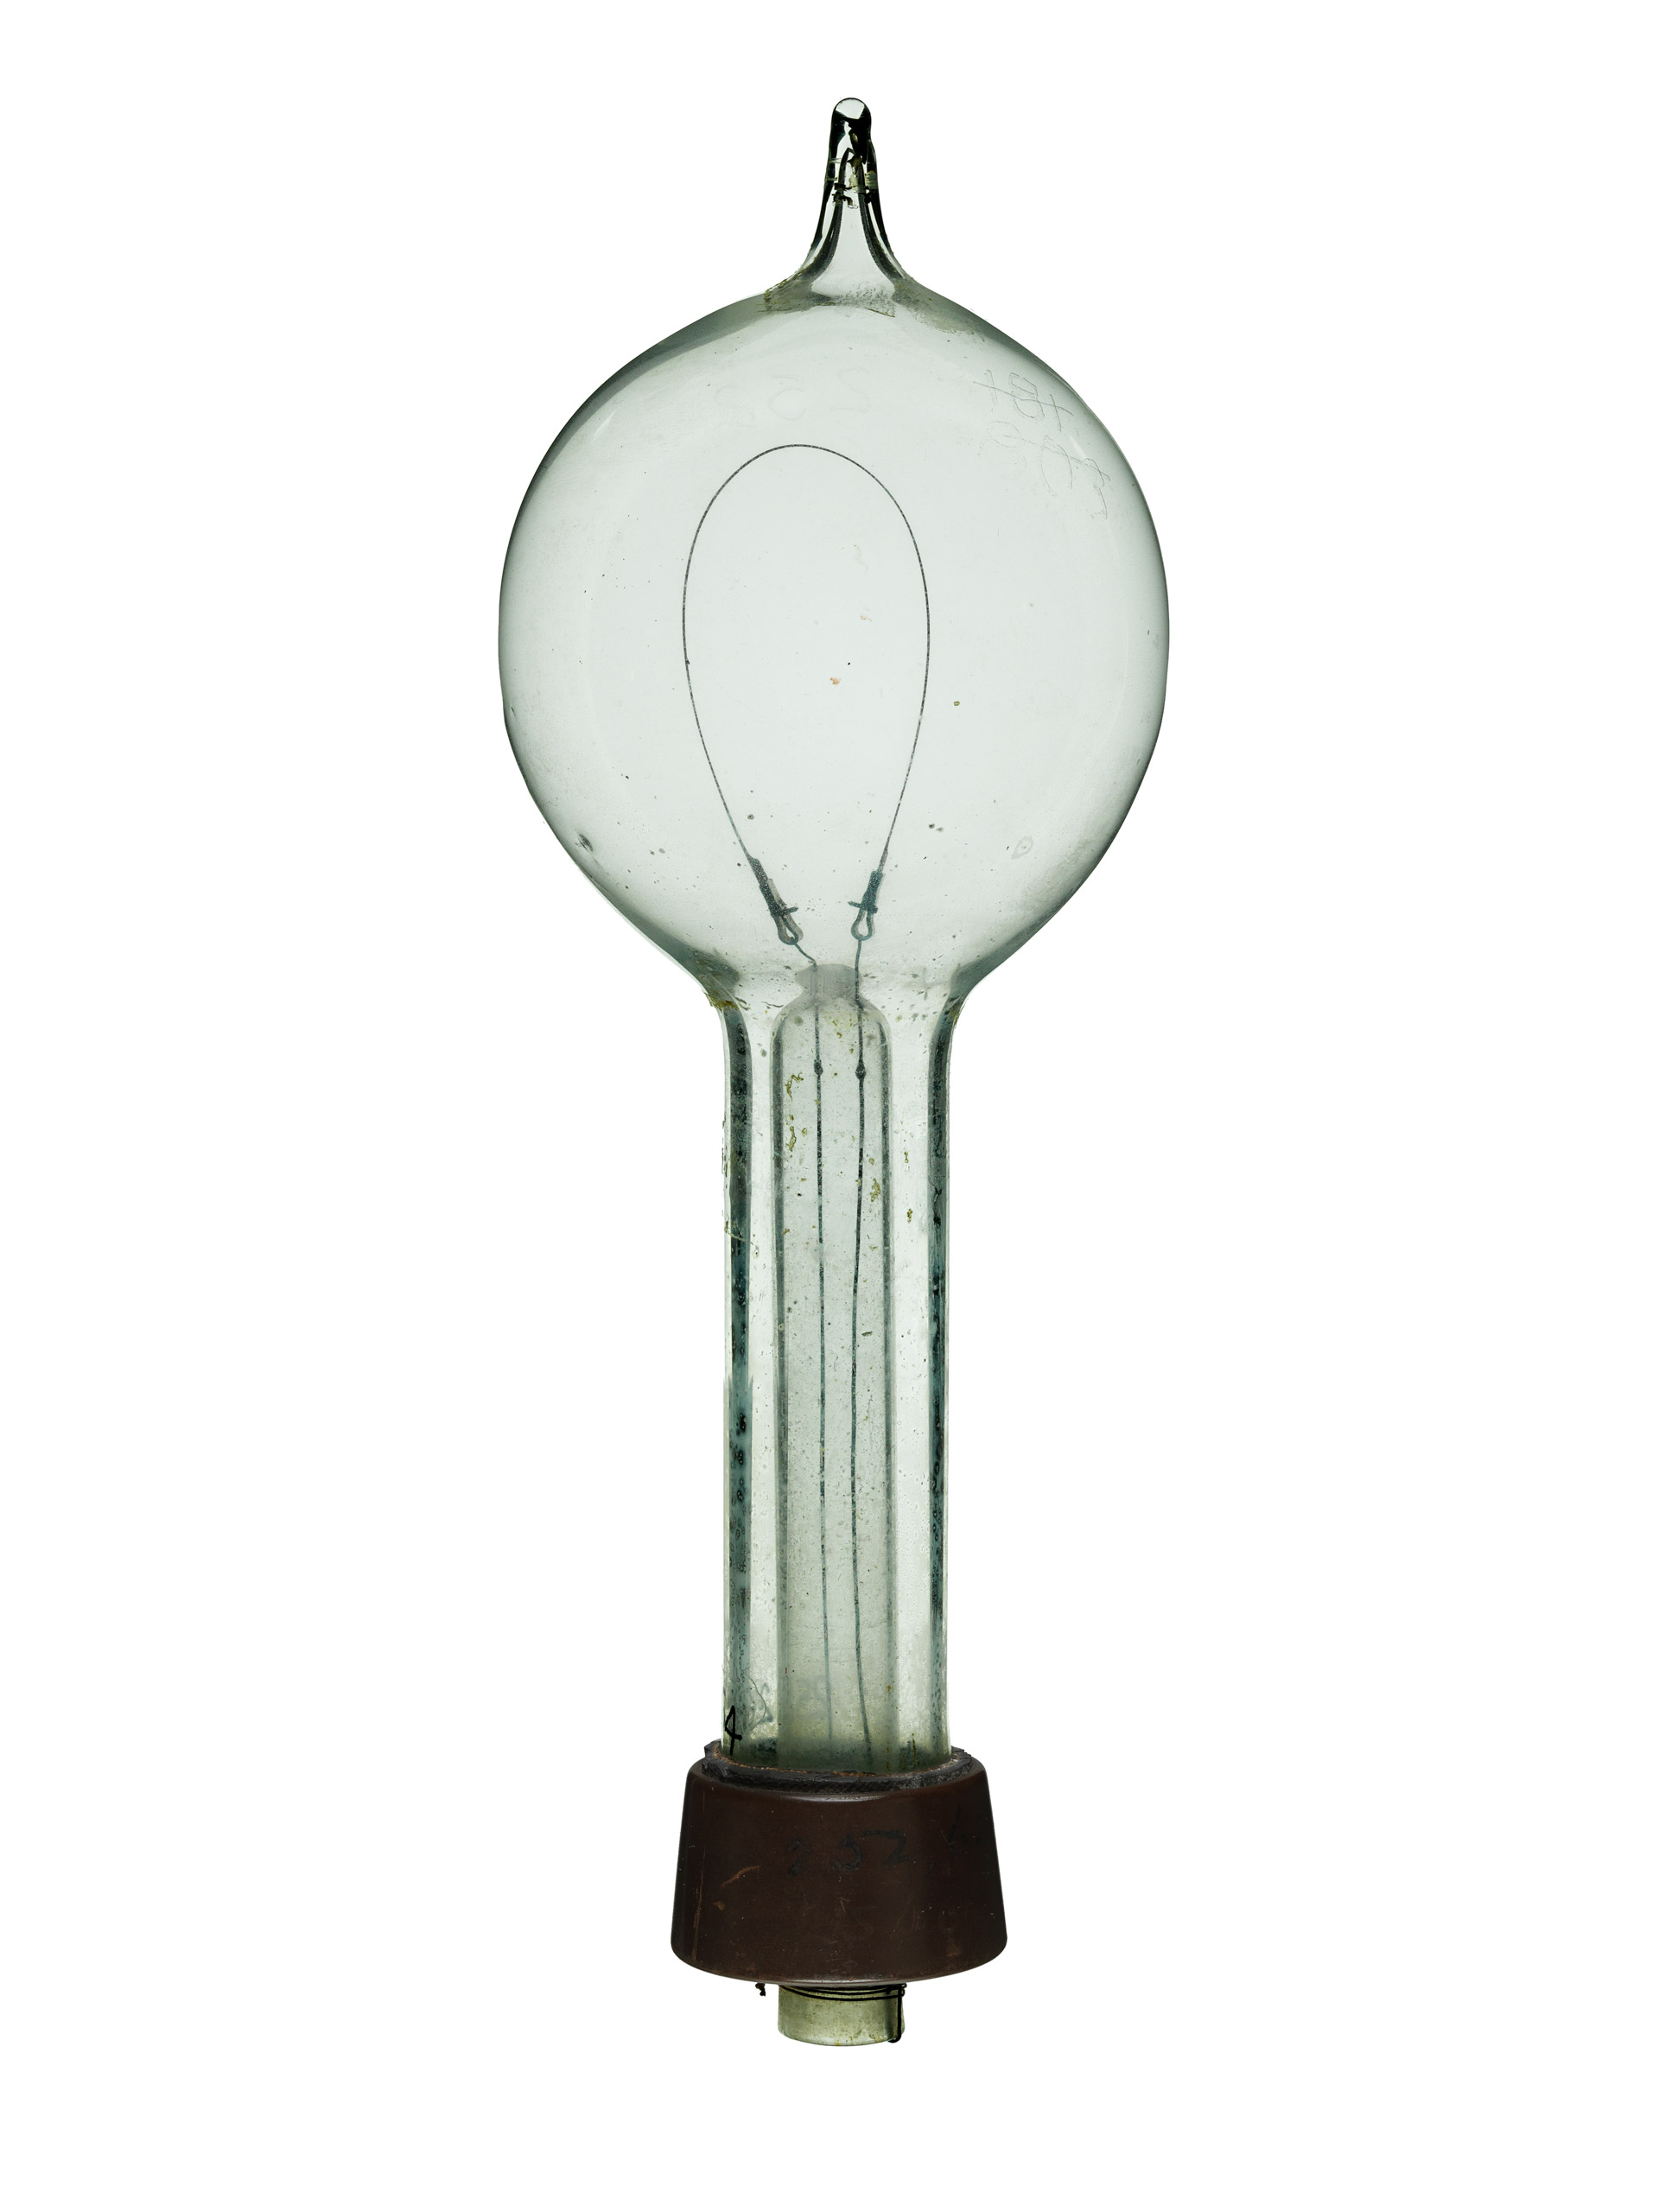 Incandescent Lamp, 1881: Thomas Edison (Patent No. 239373).                                     Thomas Edison submitted this model to patent a variation on his newly invented light bulb. Although he never put this design into production, this lamp could be disassembled to replace a burned-out filament.